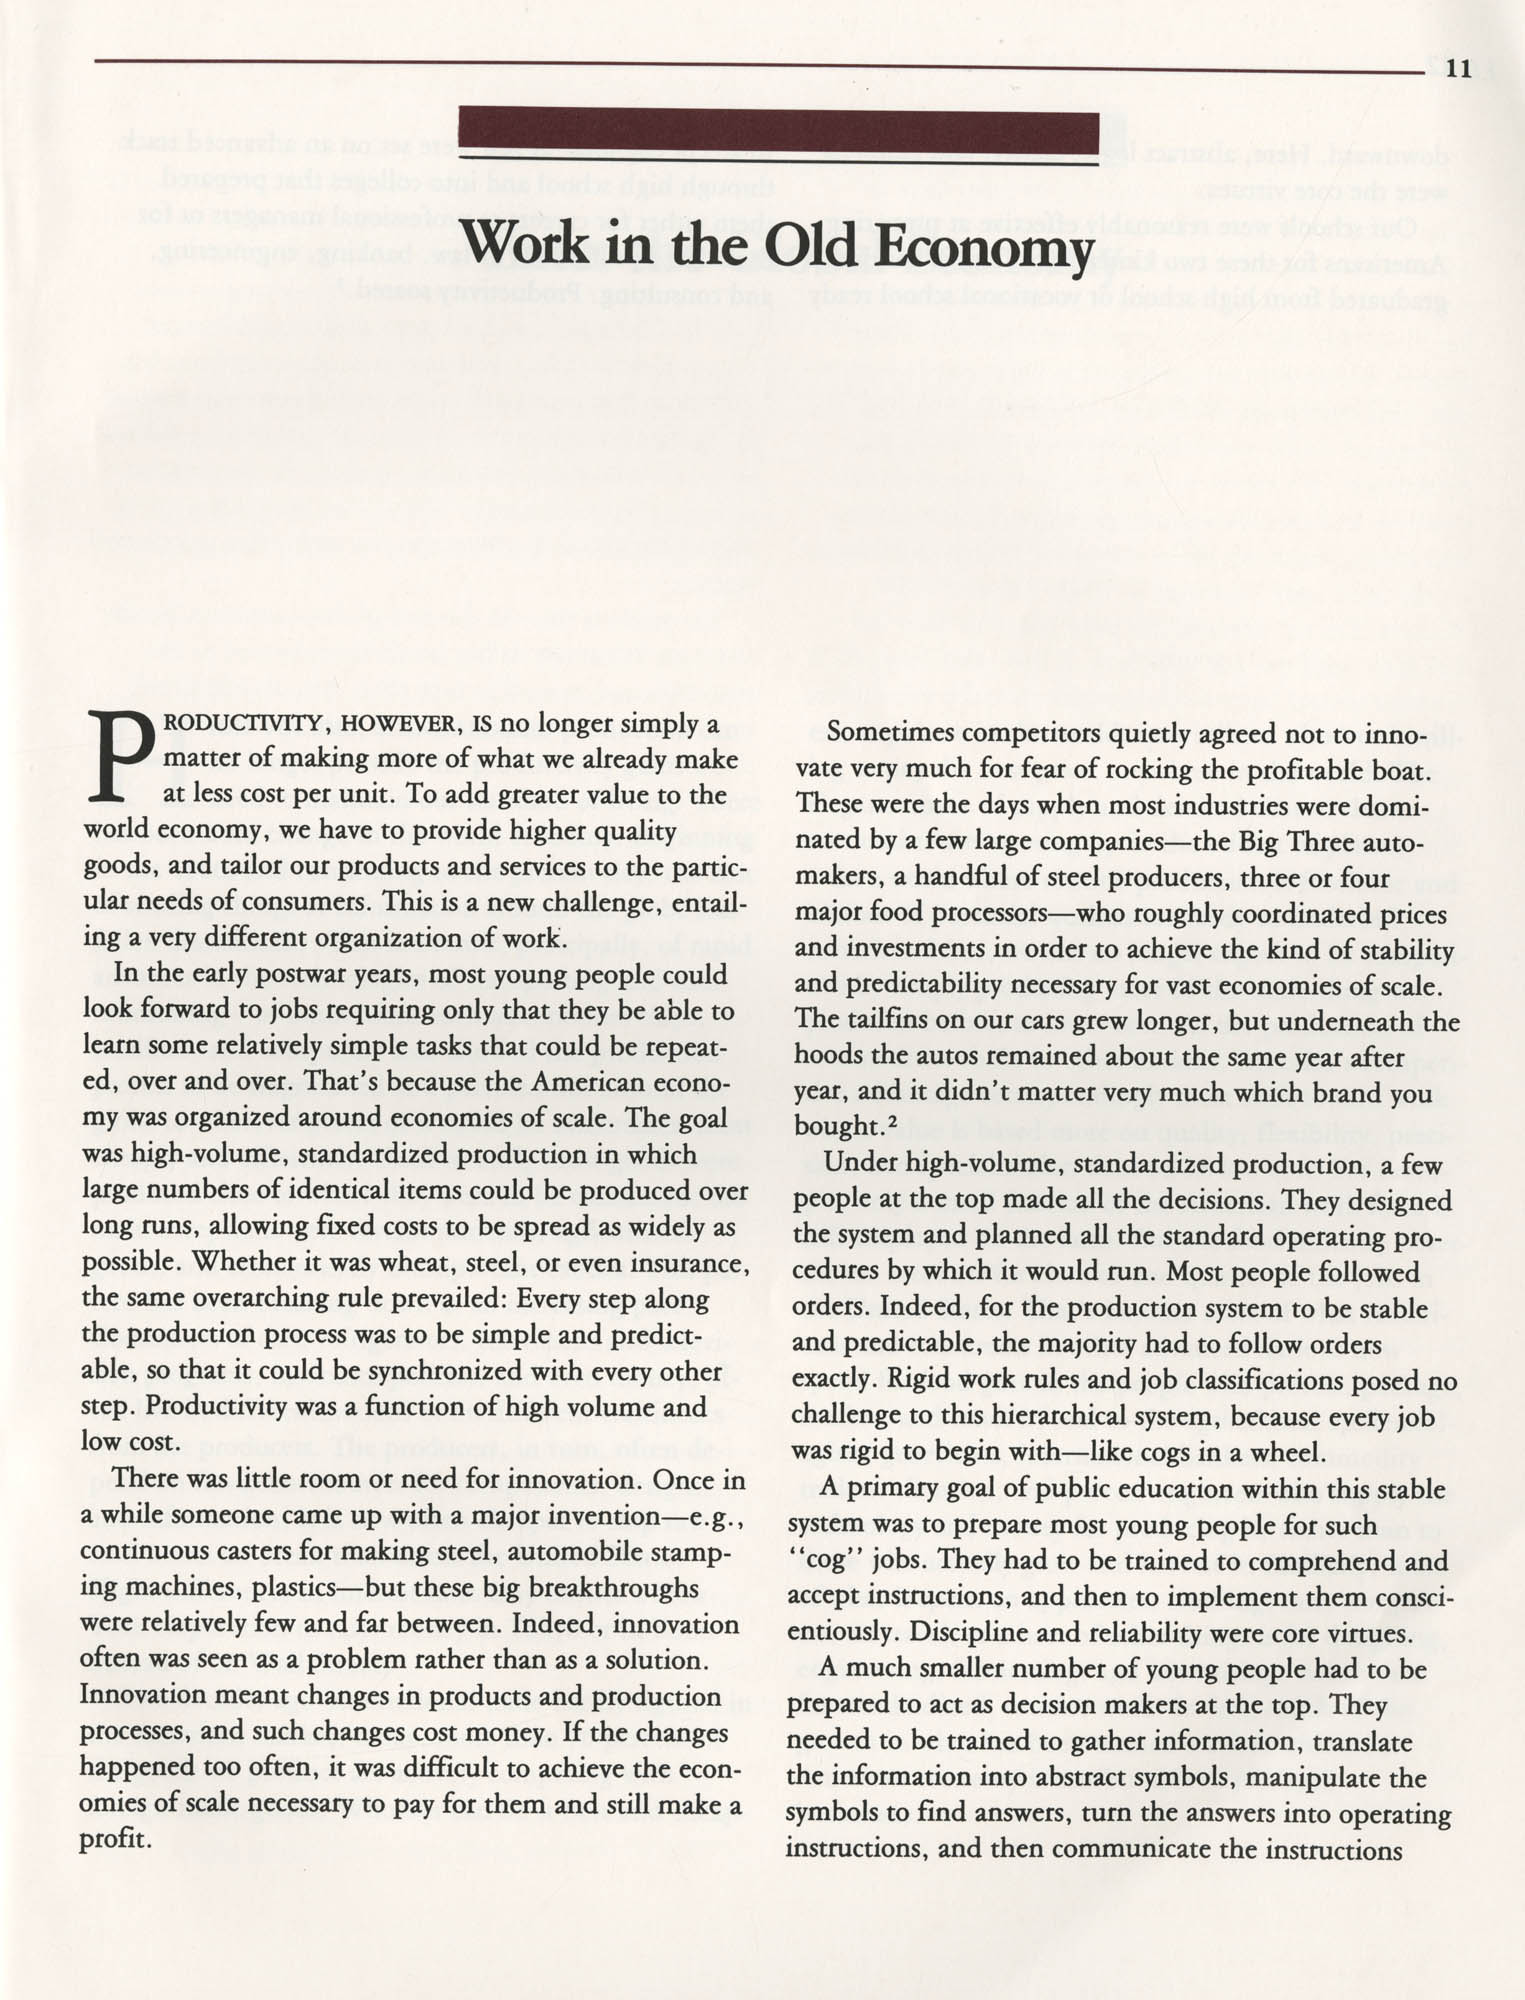 Education and the Next Economy, Page 11